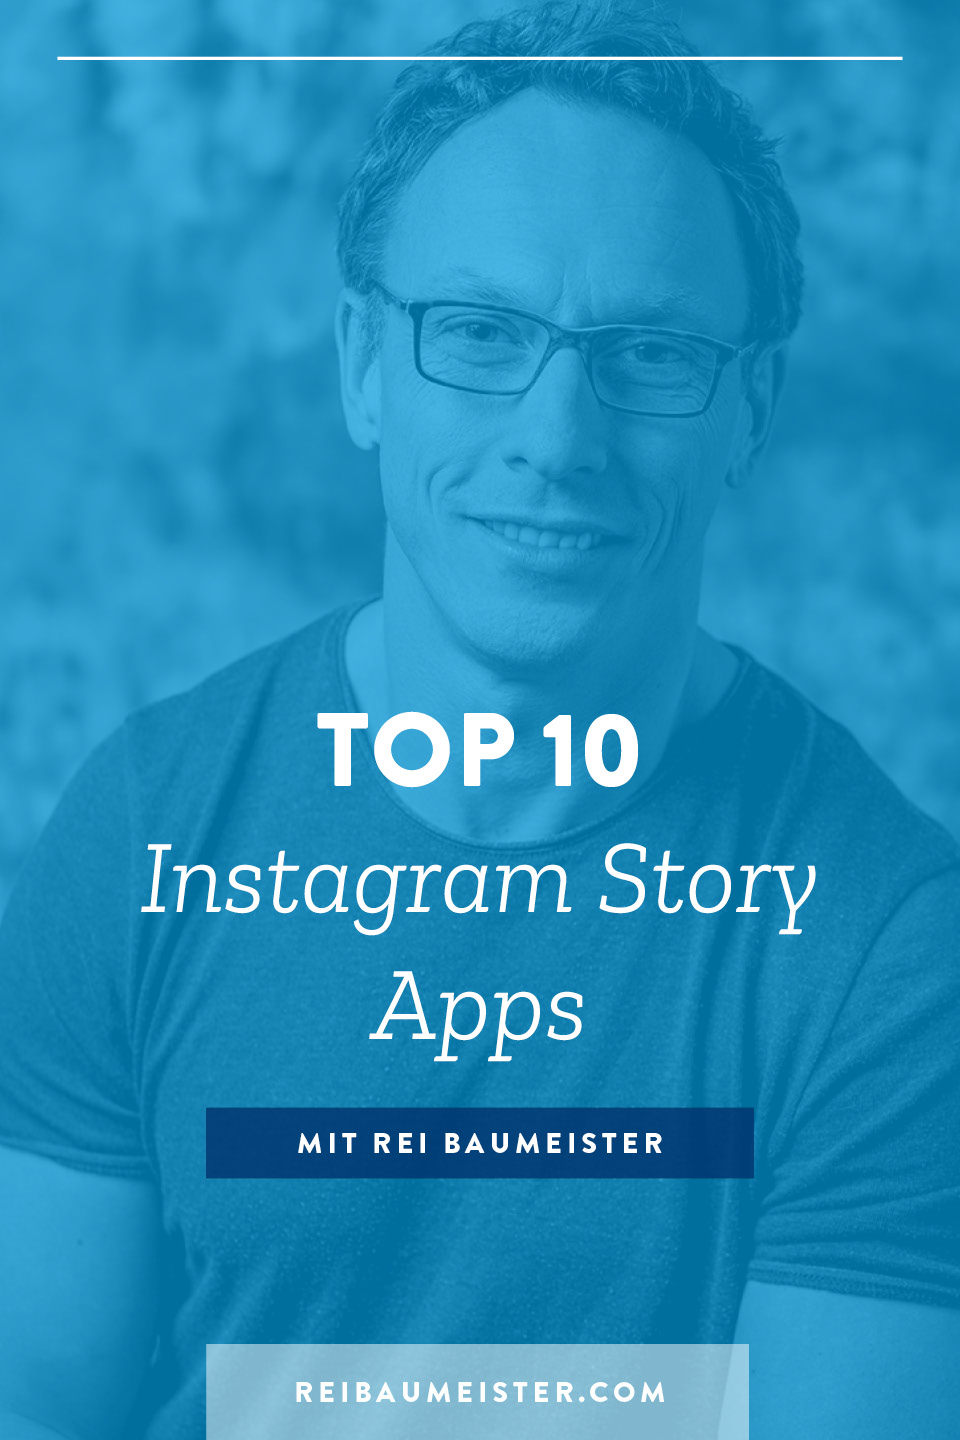 Top 10 Instagram Story Apps